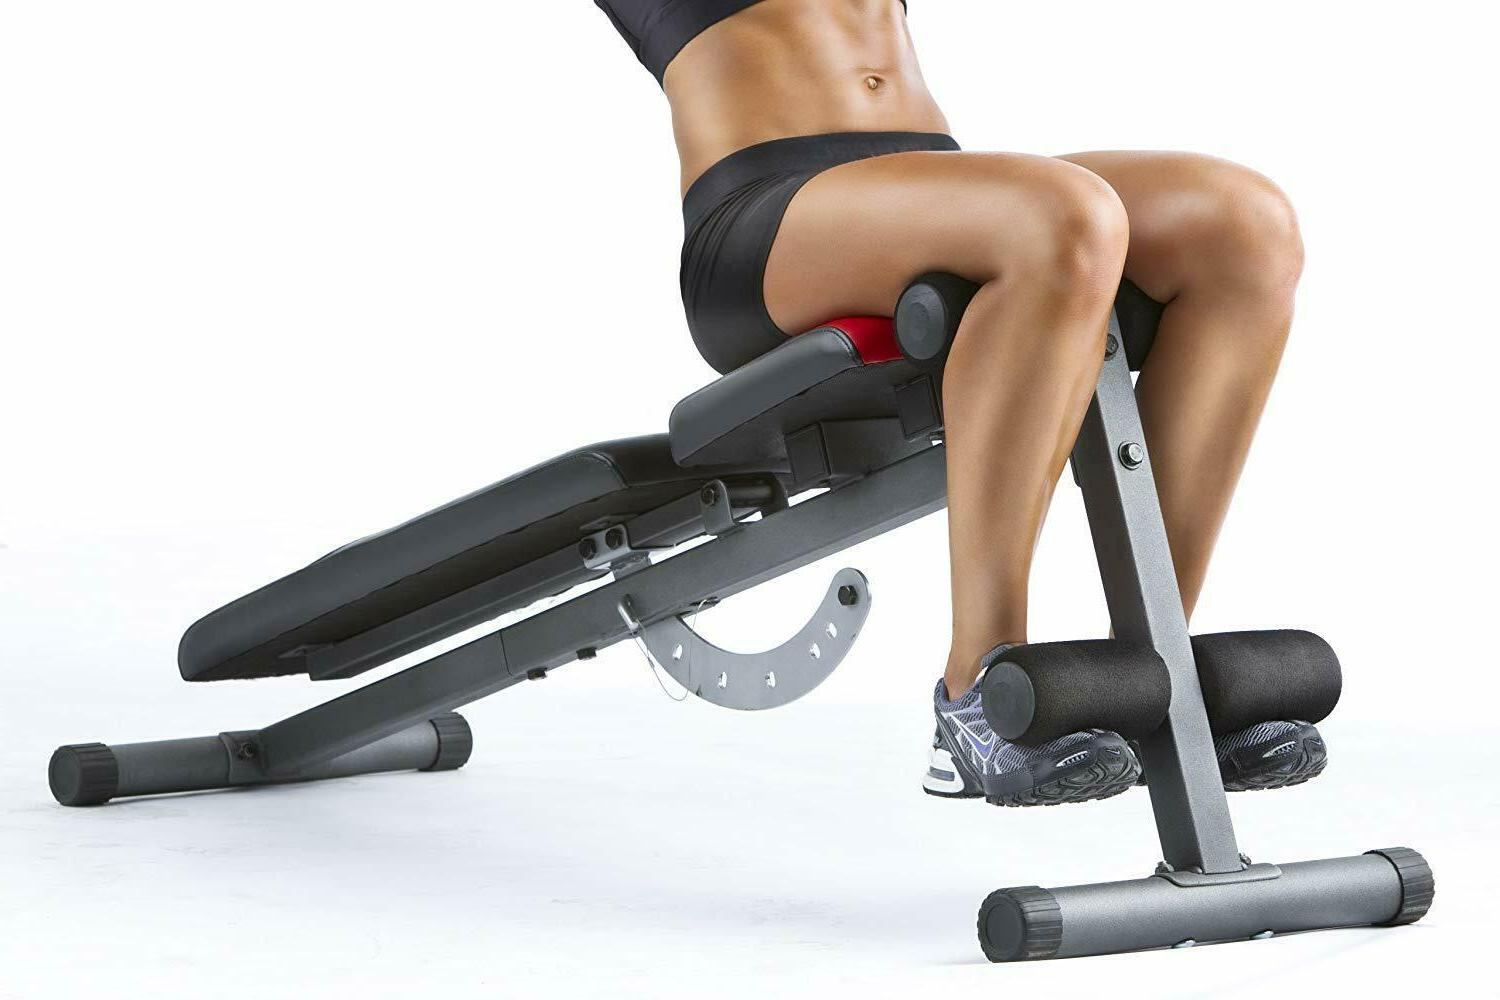 Workout weight Adjustable Gym